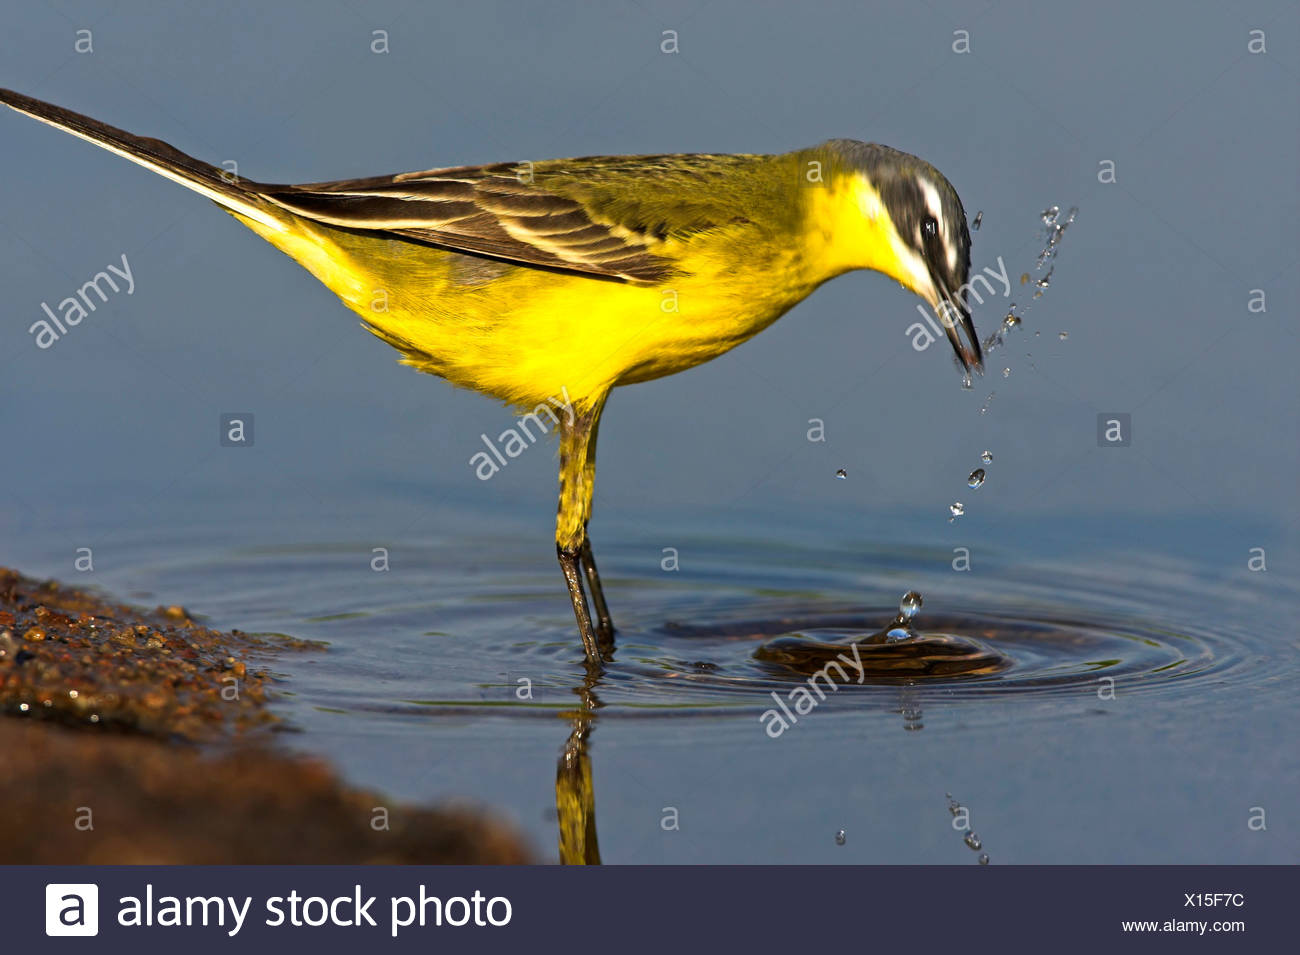 Blue-headed Wagtail, Yellow Wagtail (Motacilla flava flava), standing in a quiet water close to the bank drinking and cleaning itself, Greece, Lesbos - Stock Image